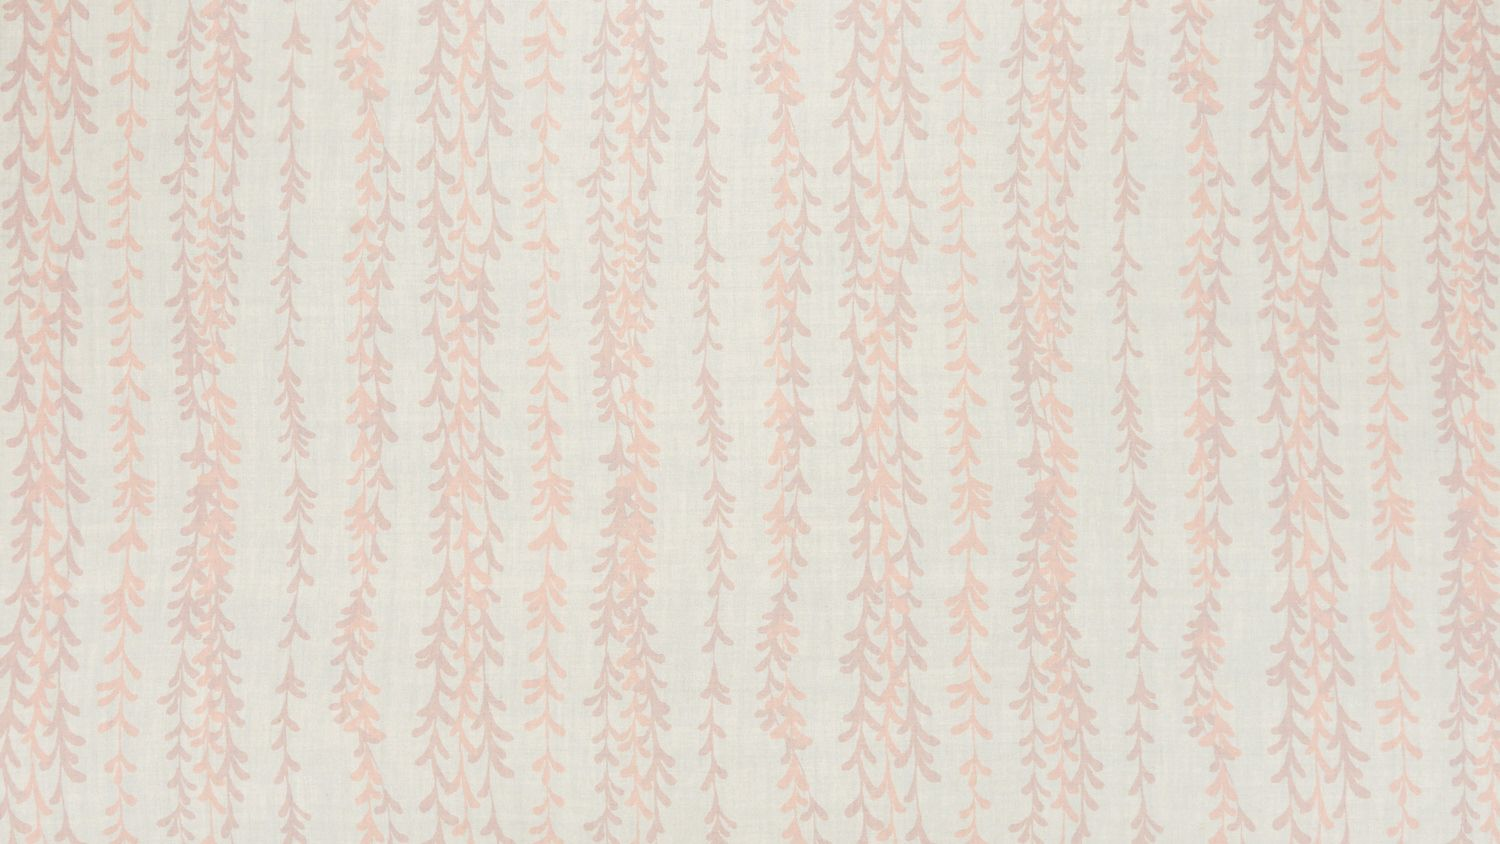 Weeping Willow in Lavender by Clay McLaurin Studio #designinspiration #clothandkindinteriordesign #clothandkindshowroom #claymclaurin #textiles #fabric ...